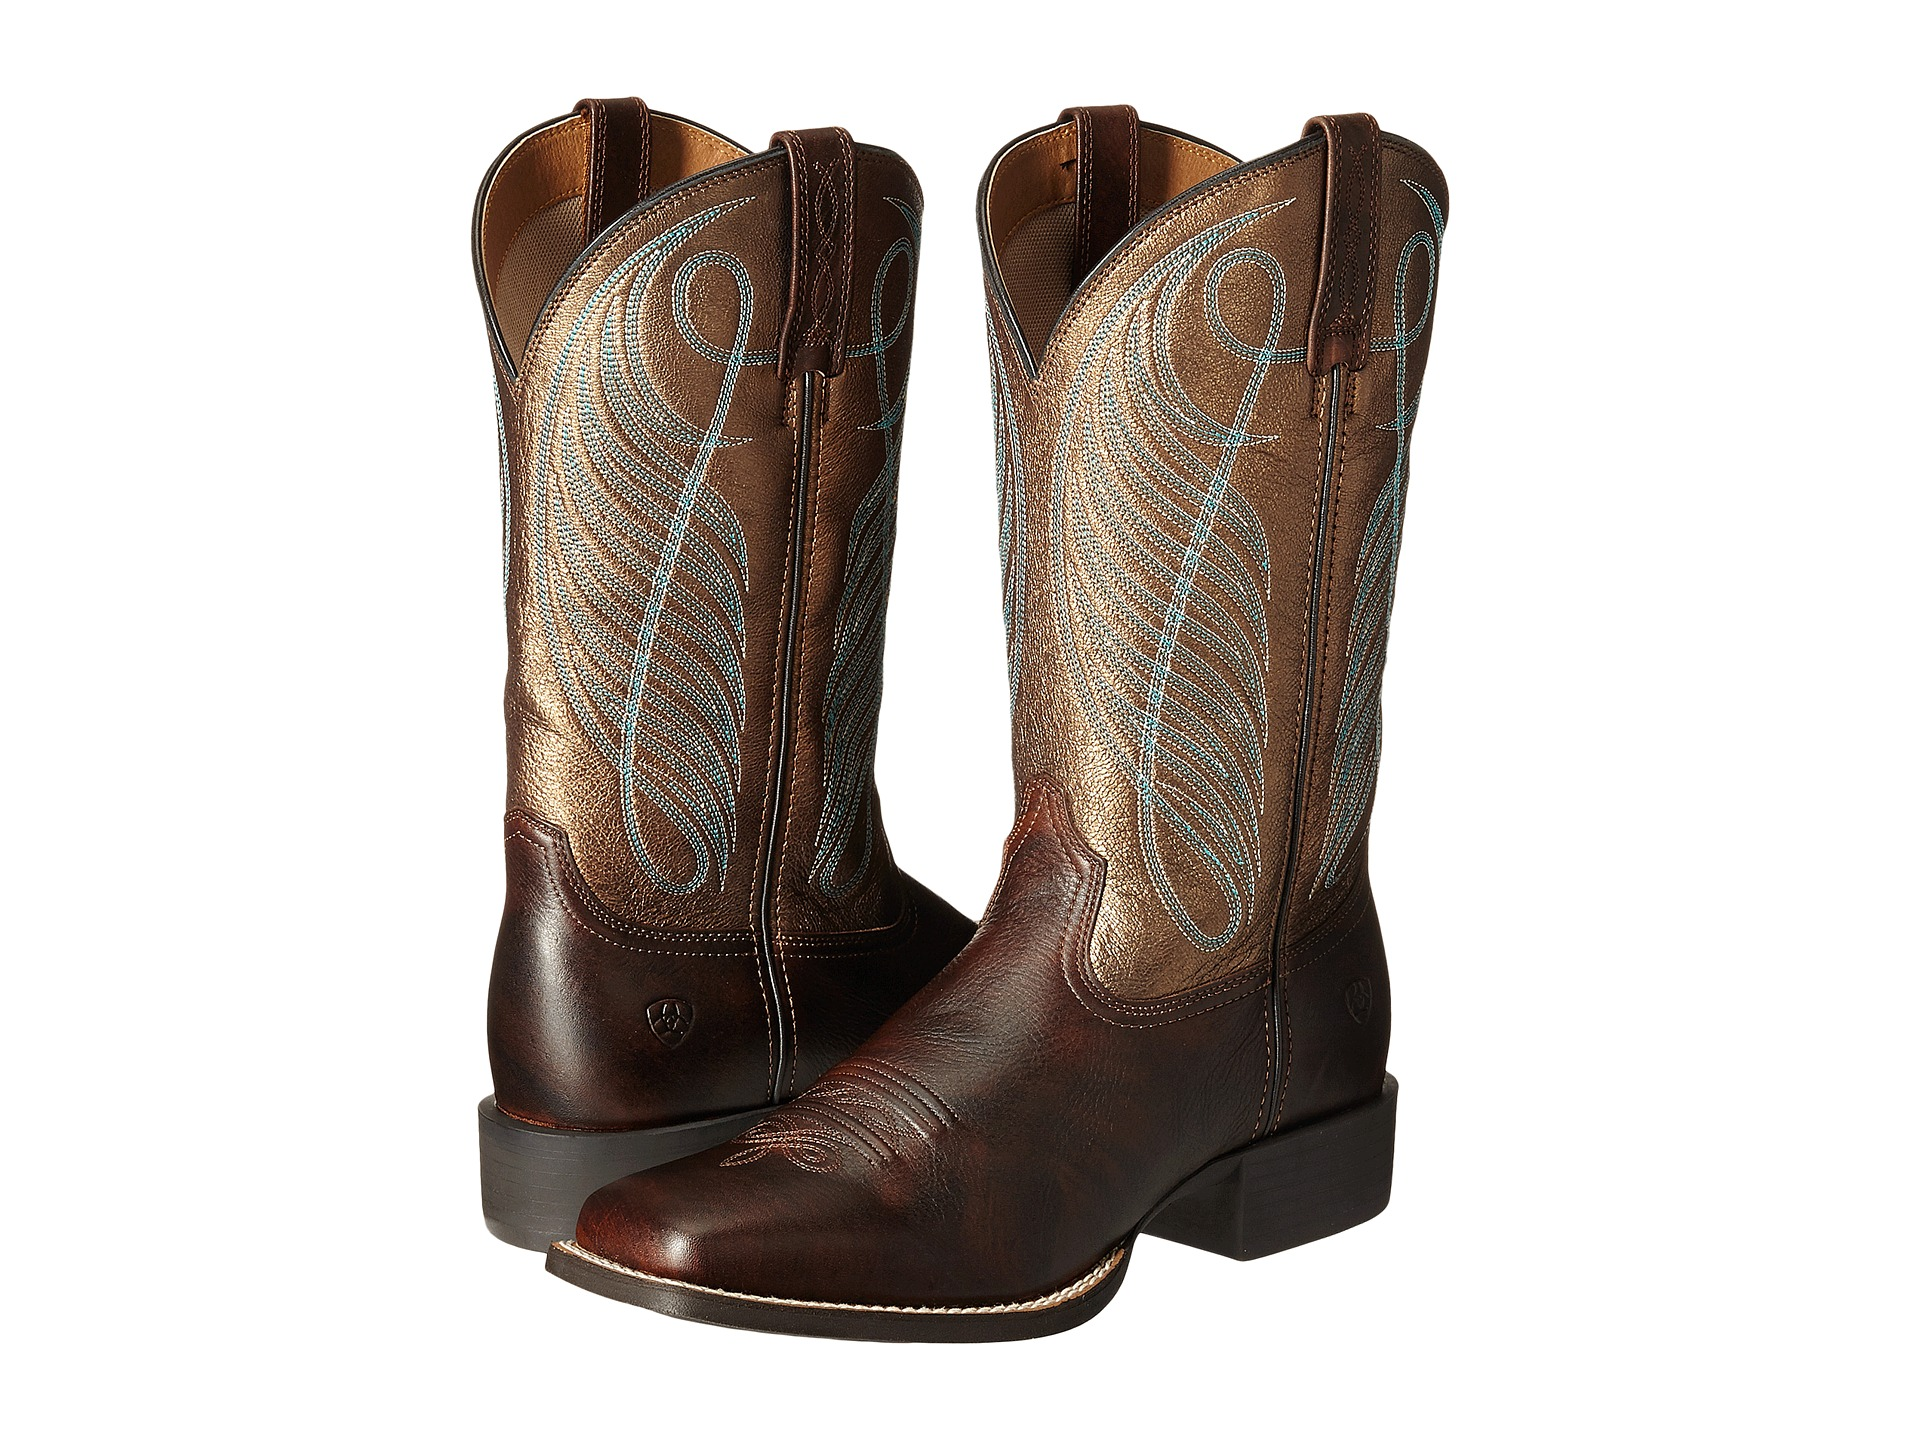 Ariat Round Up Square Toe - Zappos.com Free Shipping BOTH Ways